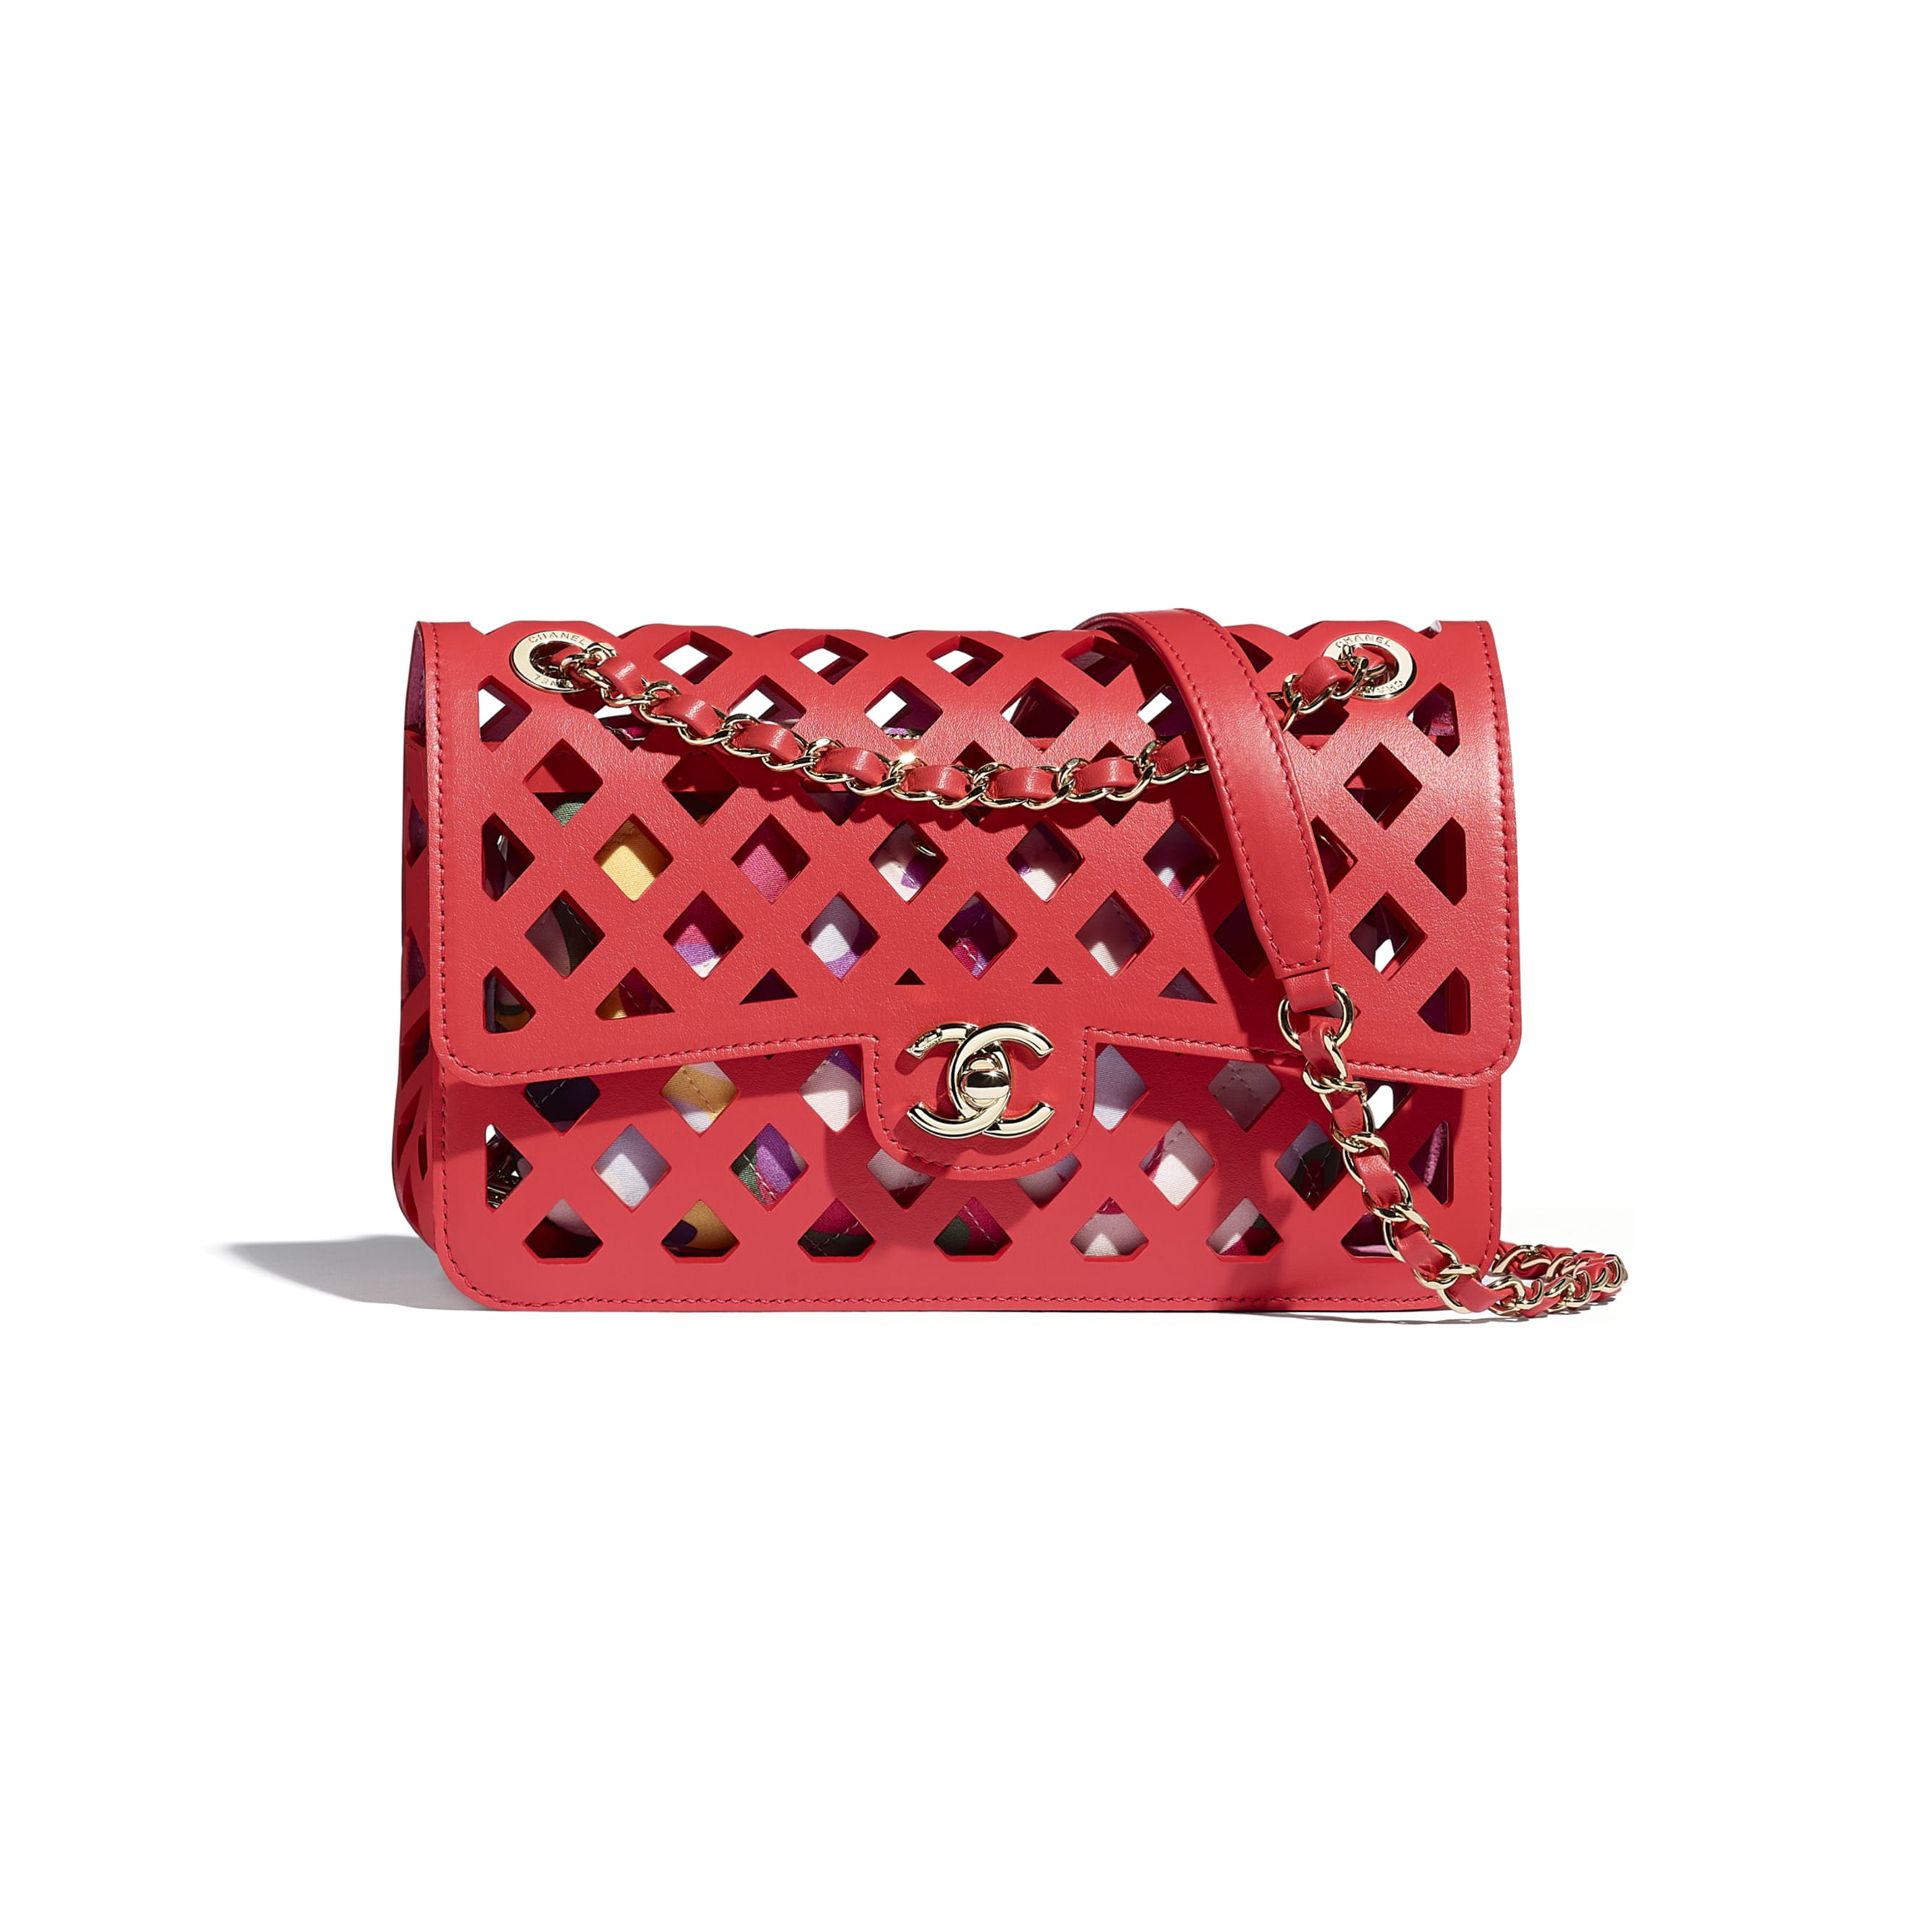 Flap Bag - Red - Perforated Calfskin, Printed Fabric & Gold-Tone Metal - CHANEL - Default view - see standard sized version